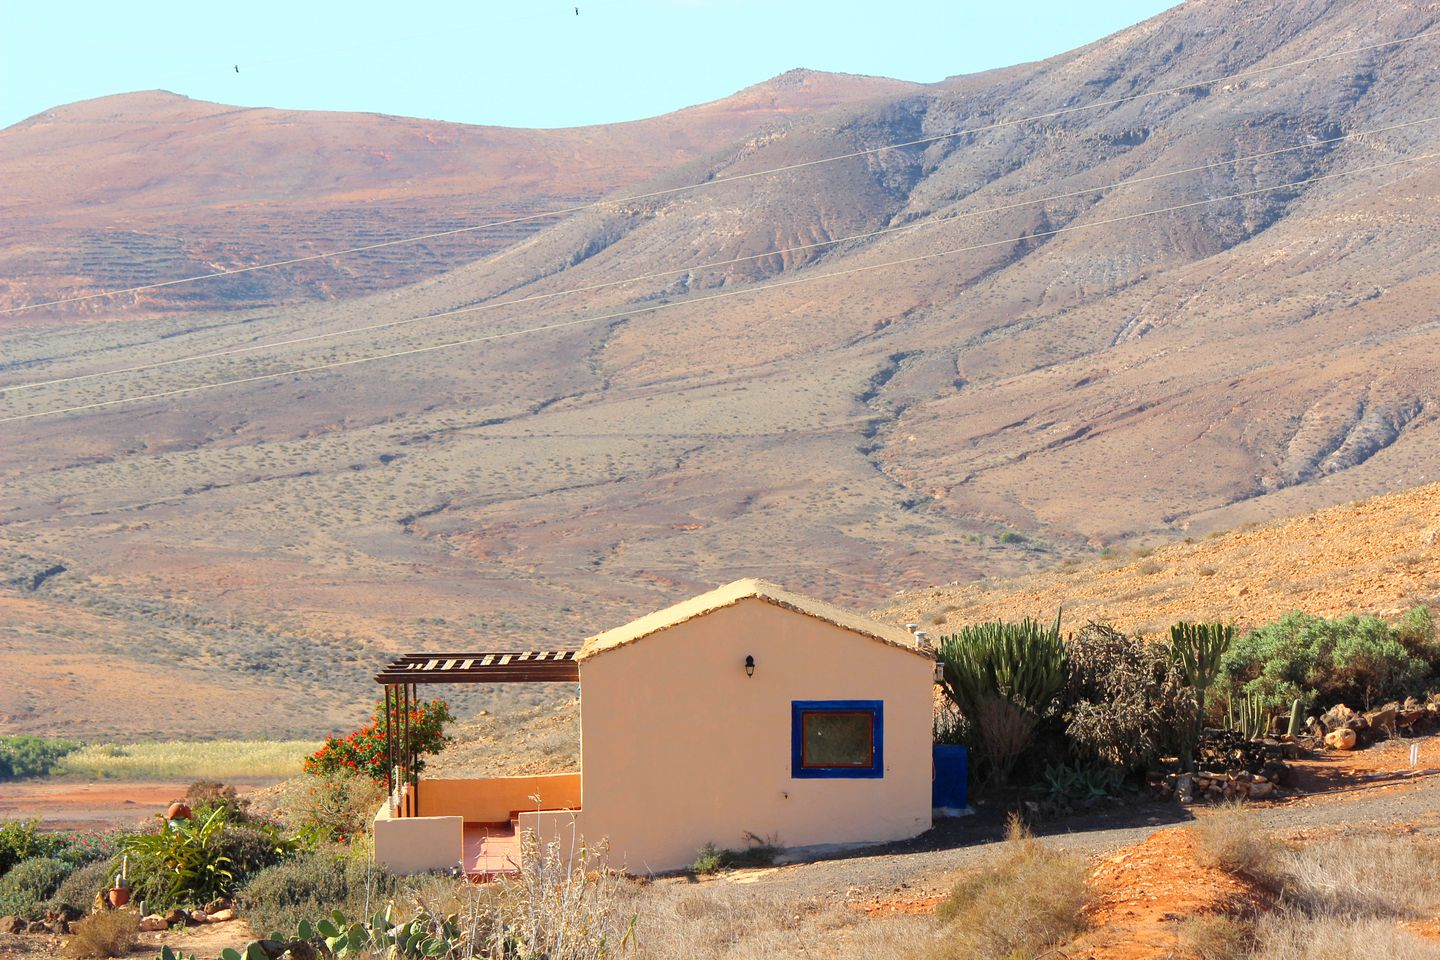 Cottages (Fuerteventura, Canary Islands, Spain)